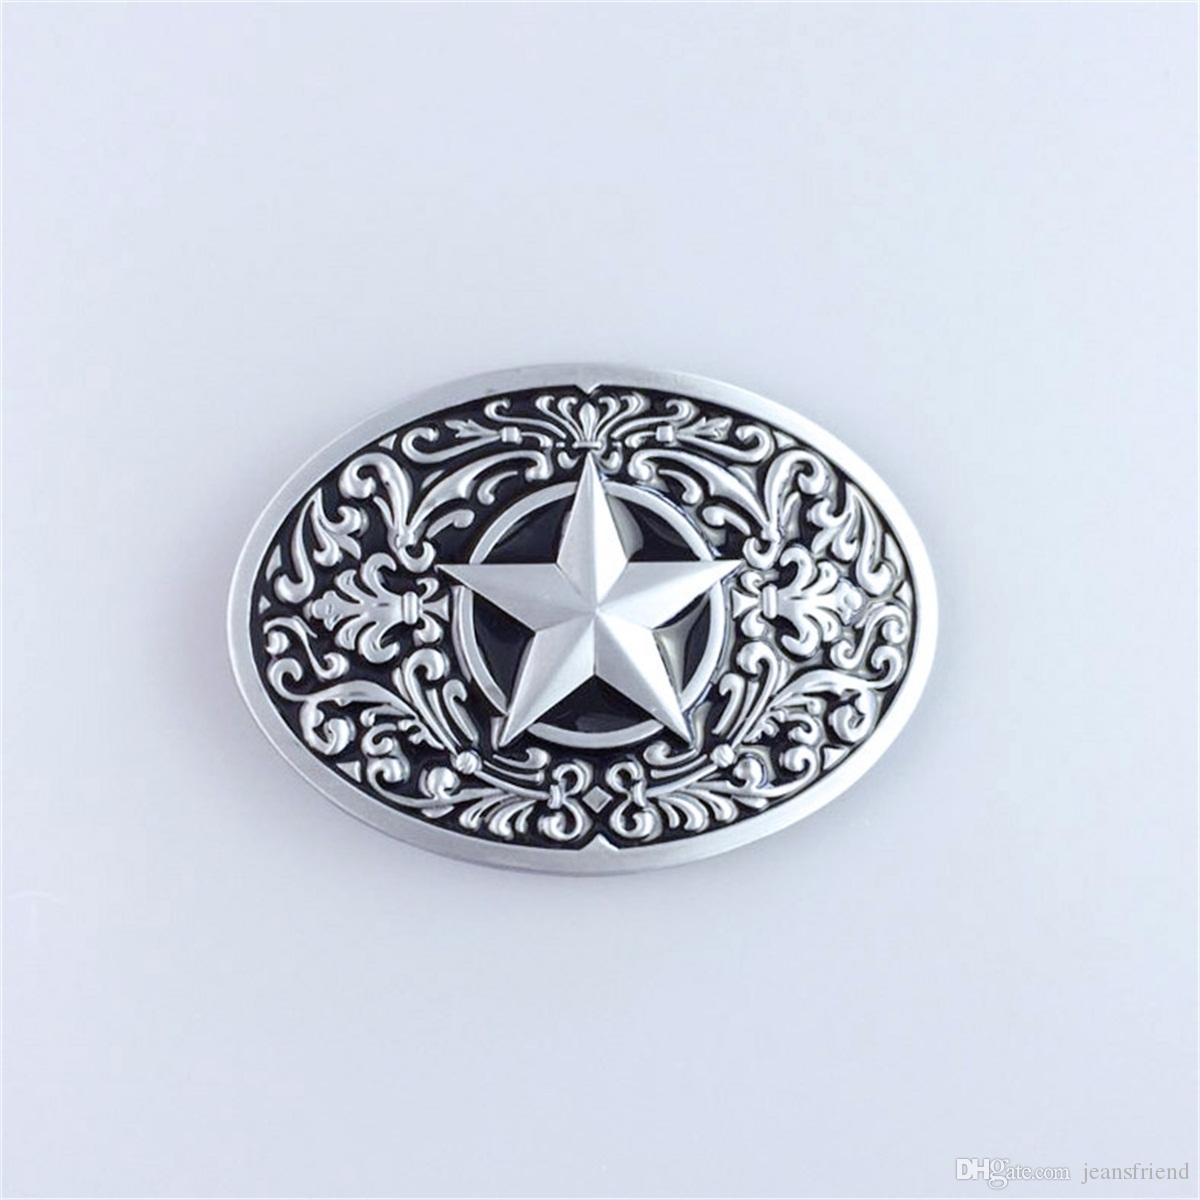 Flower Star Western Metal Fashion Belt Buckle